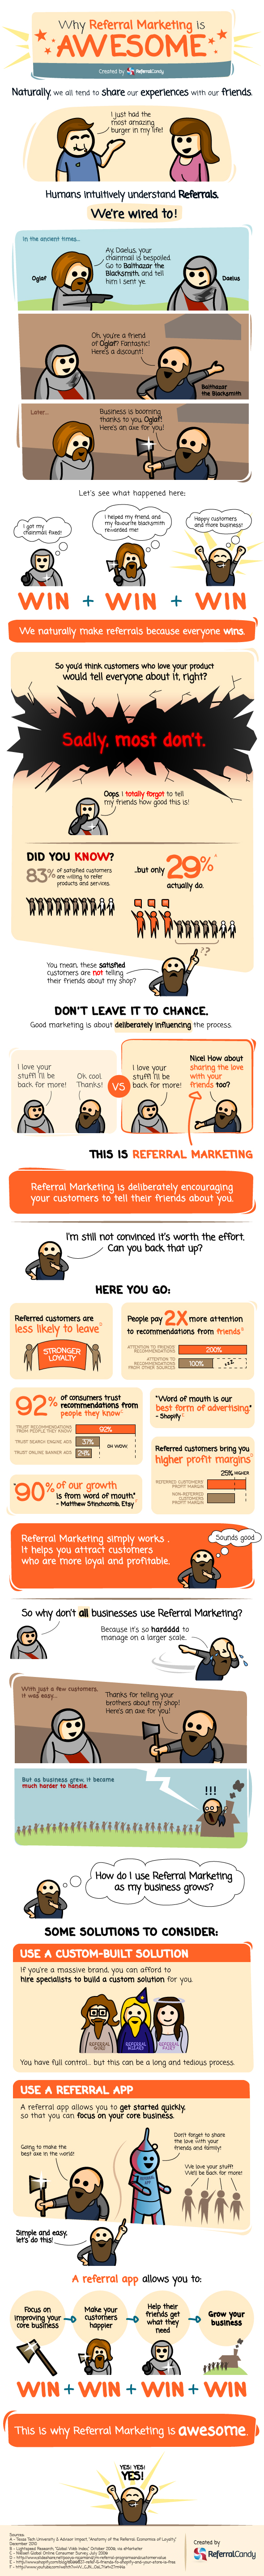 Why Referral Marketing is Awesome - Infographic